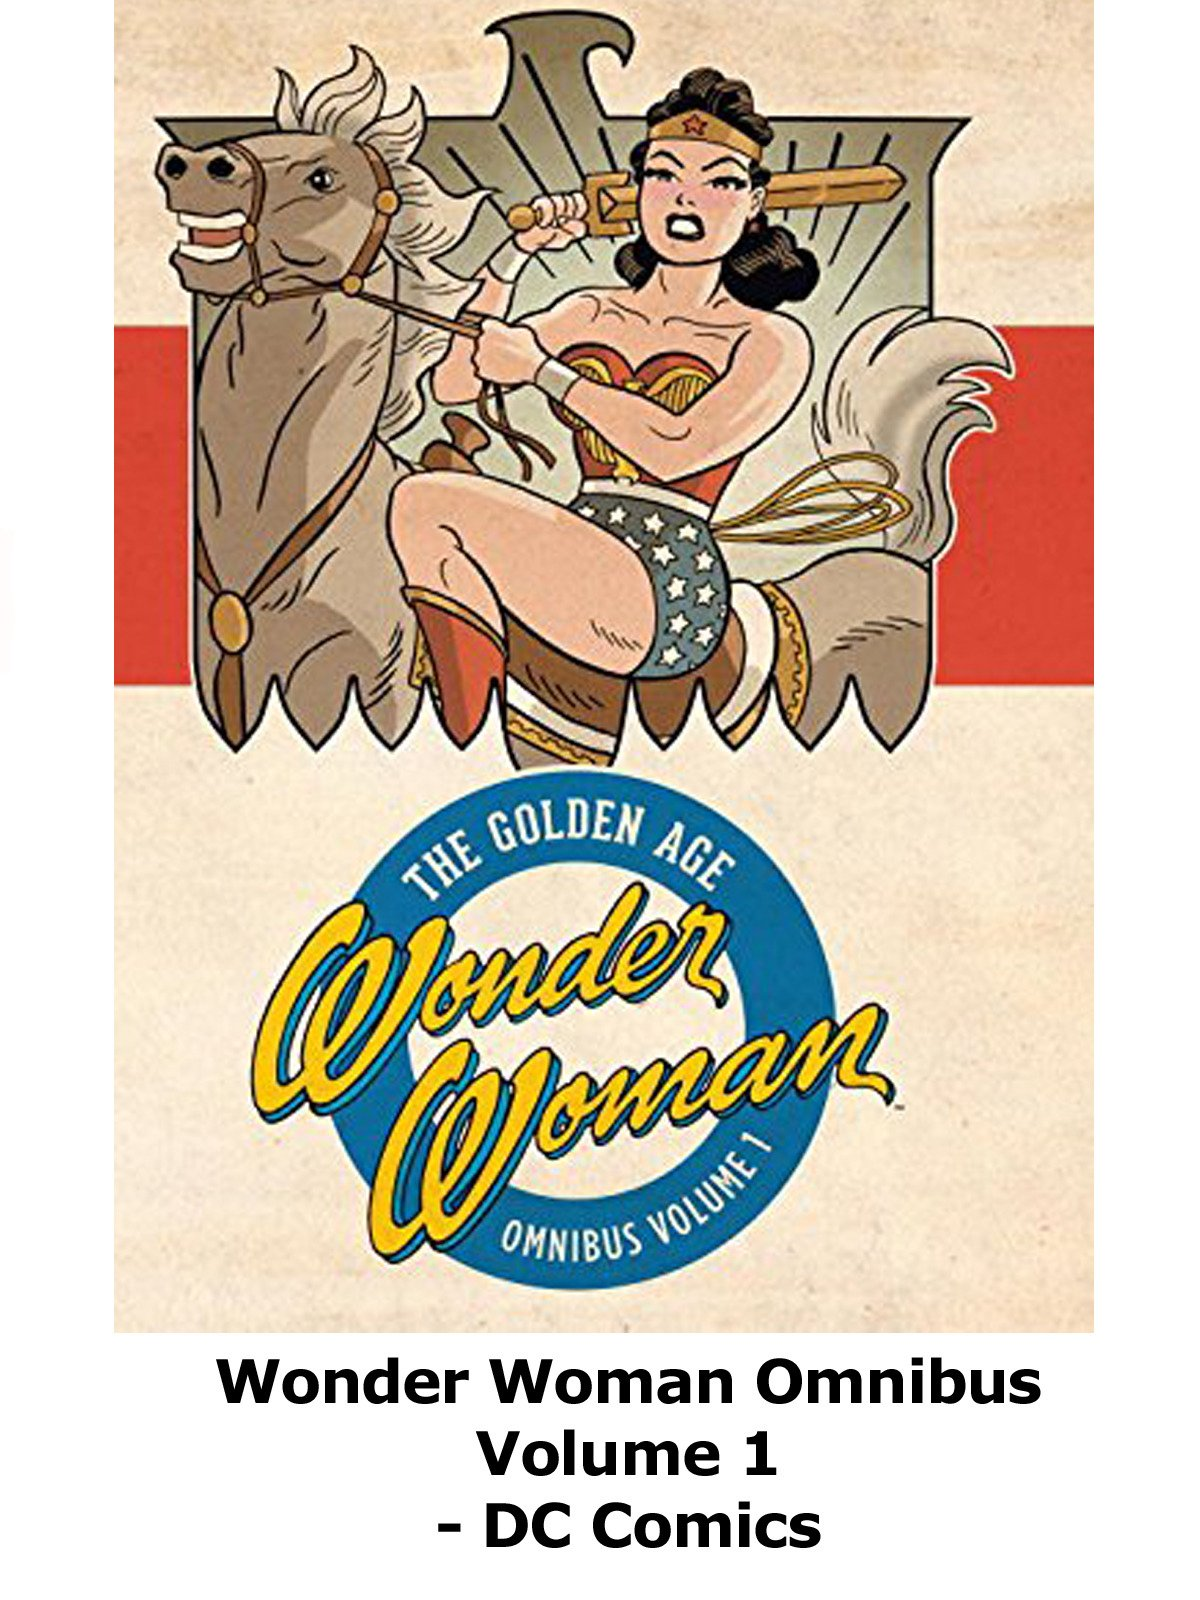 Review: Wonder Woman Omnibus Volume 1 on Amazon Prime Video UK